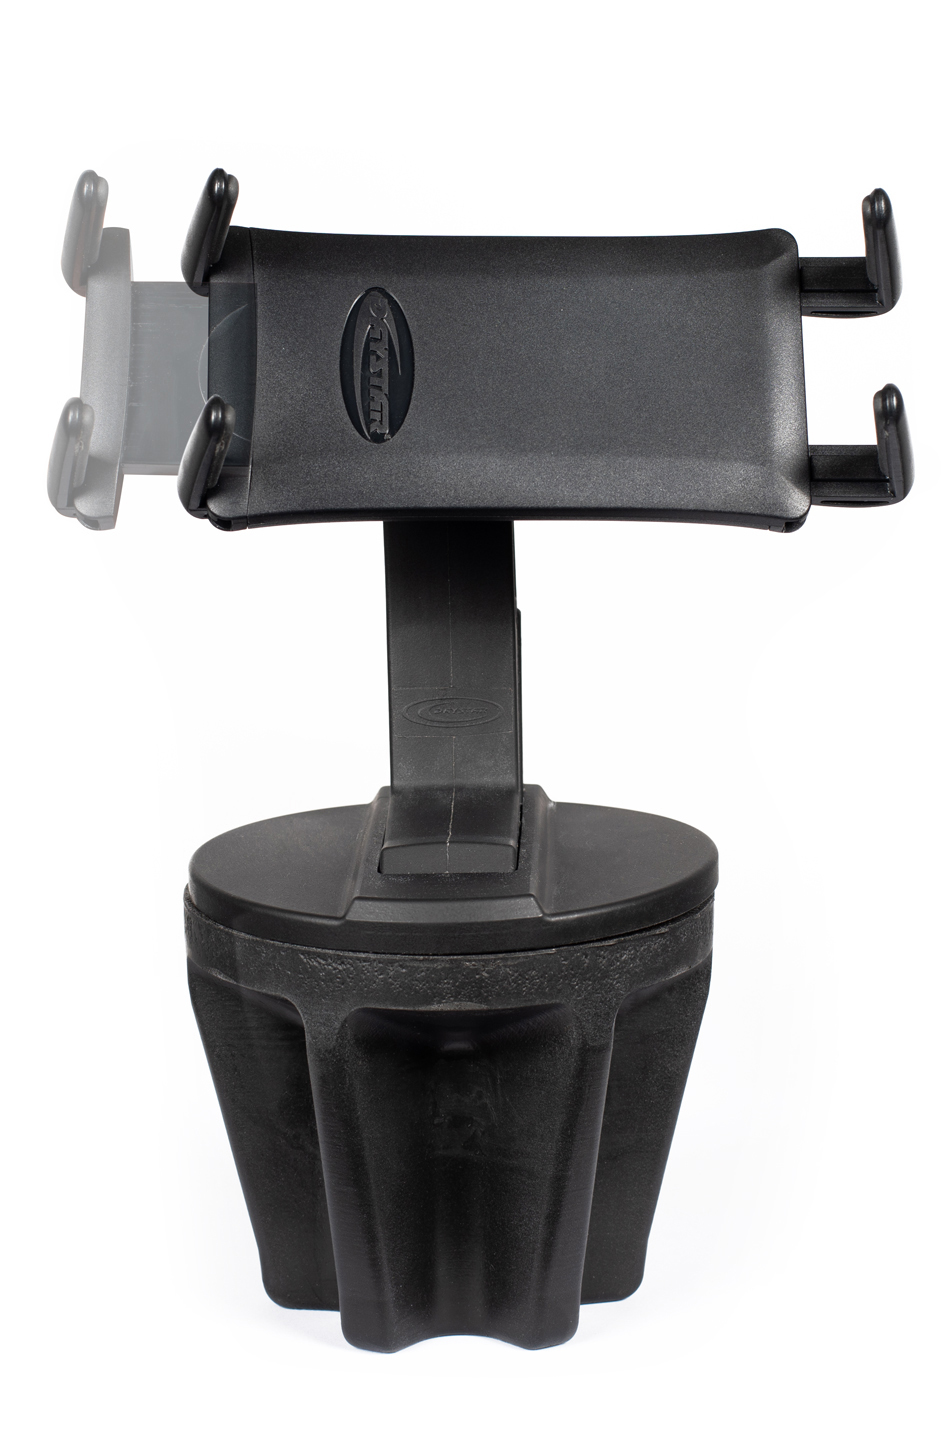 Daystar Products International Hands Free Phone Grip Fits In Cup Holder